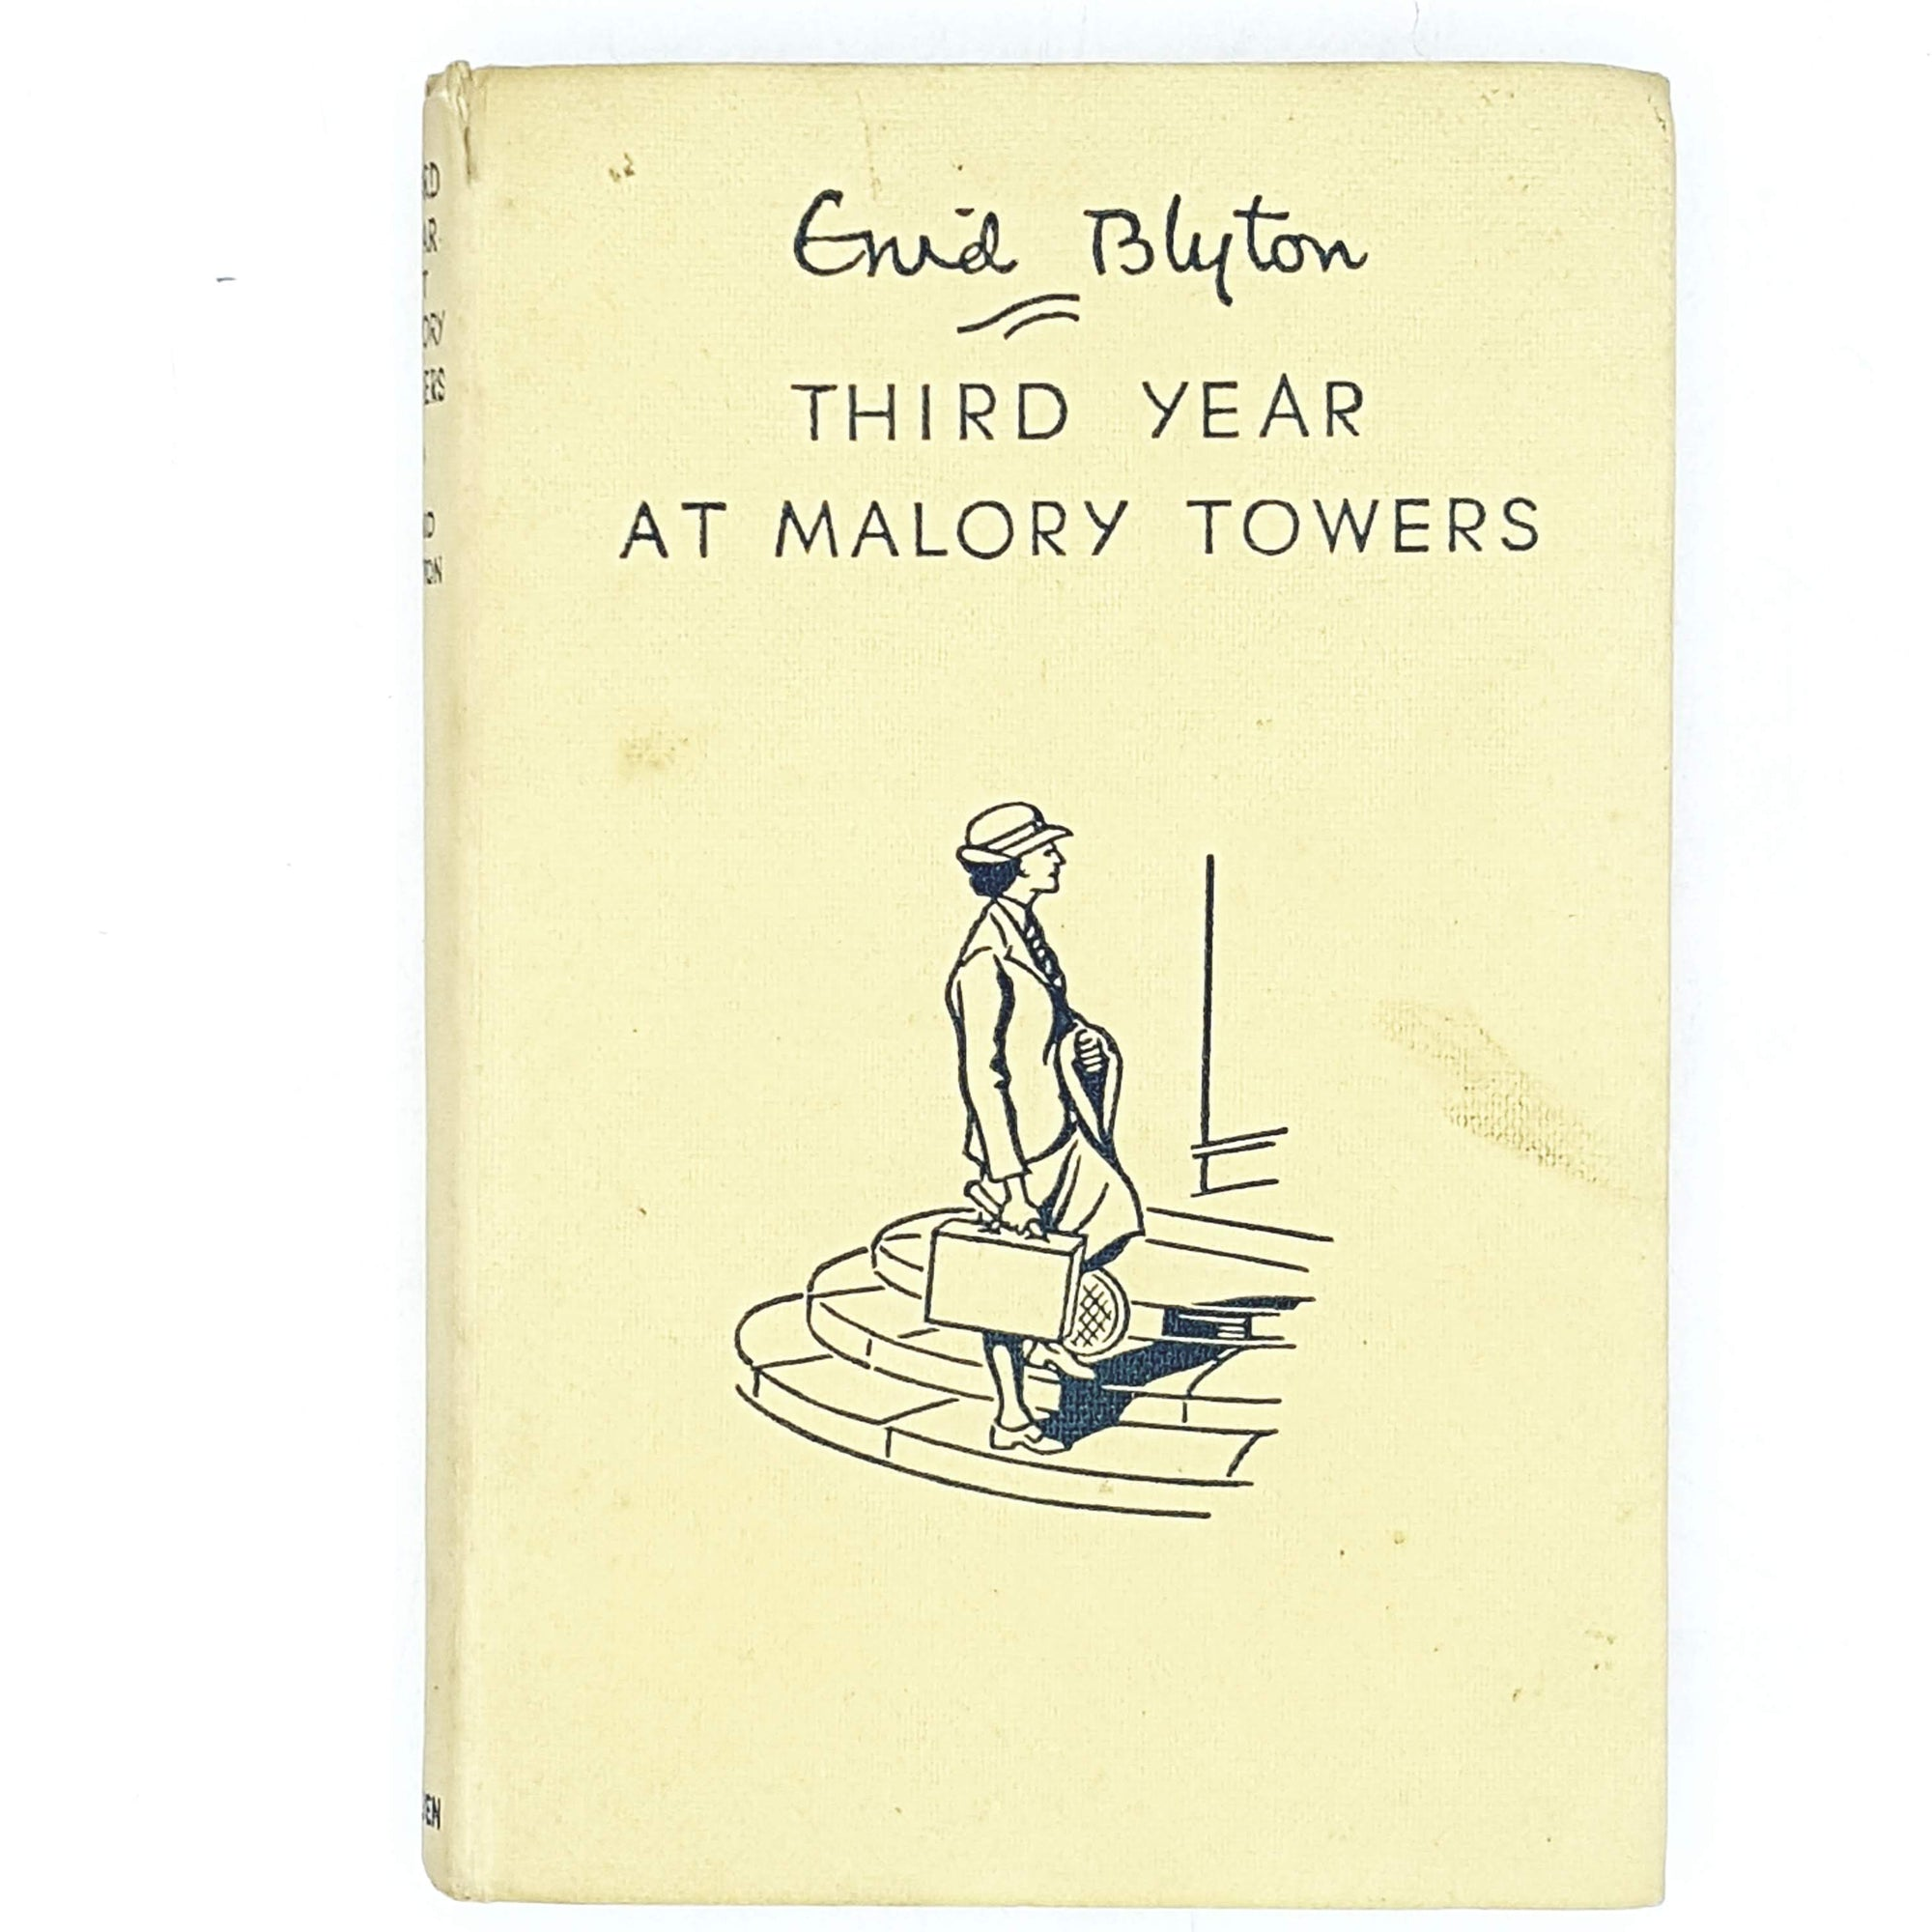 illustrated-enid-blytons-yellow-third-year-at-malory-towers-1958-country-house-library